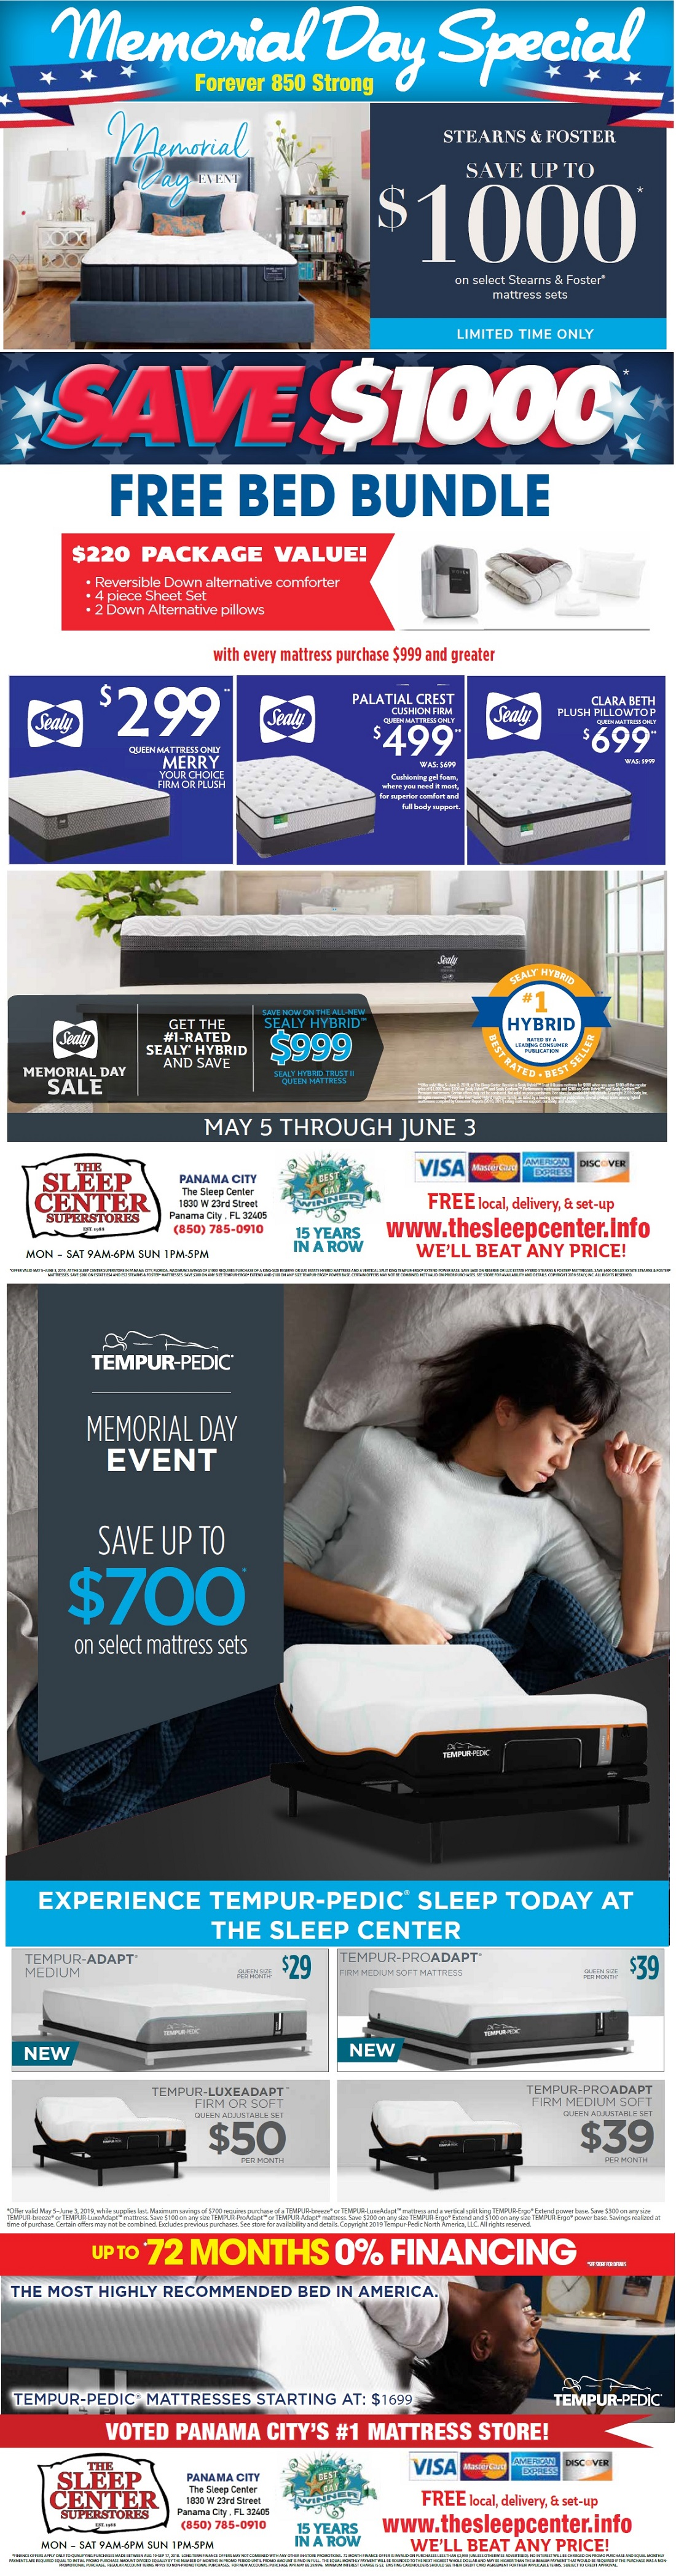 Panama City Mattress Sale Memorial Day 2019